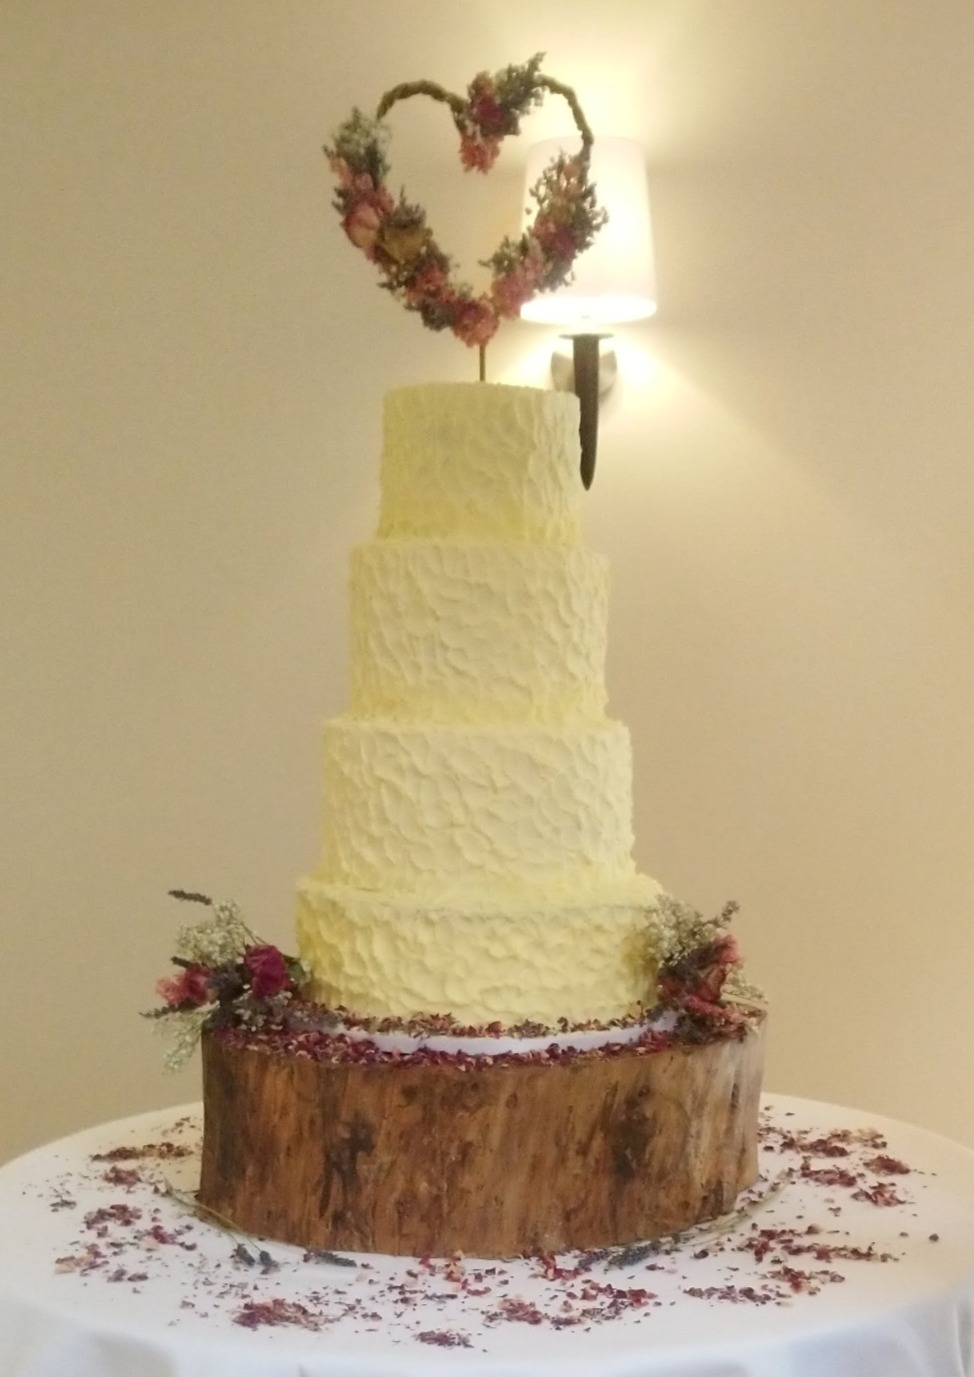 Rustic Buttercream & Dried Flower Cake